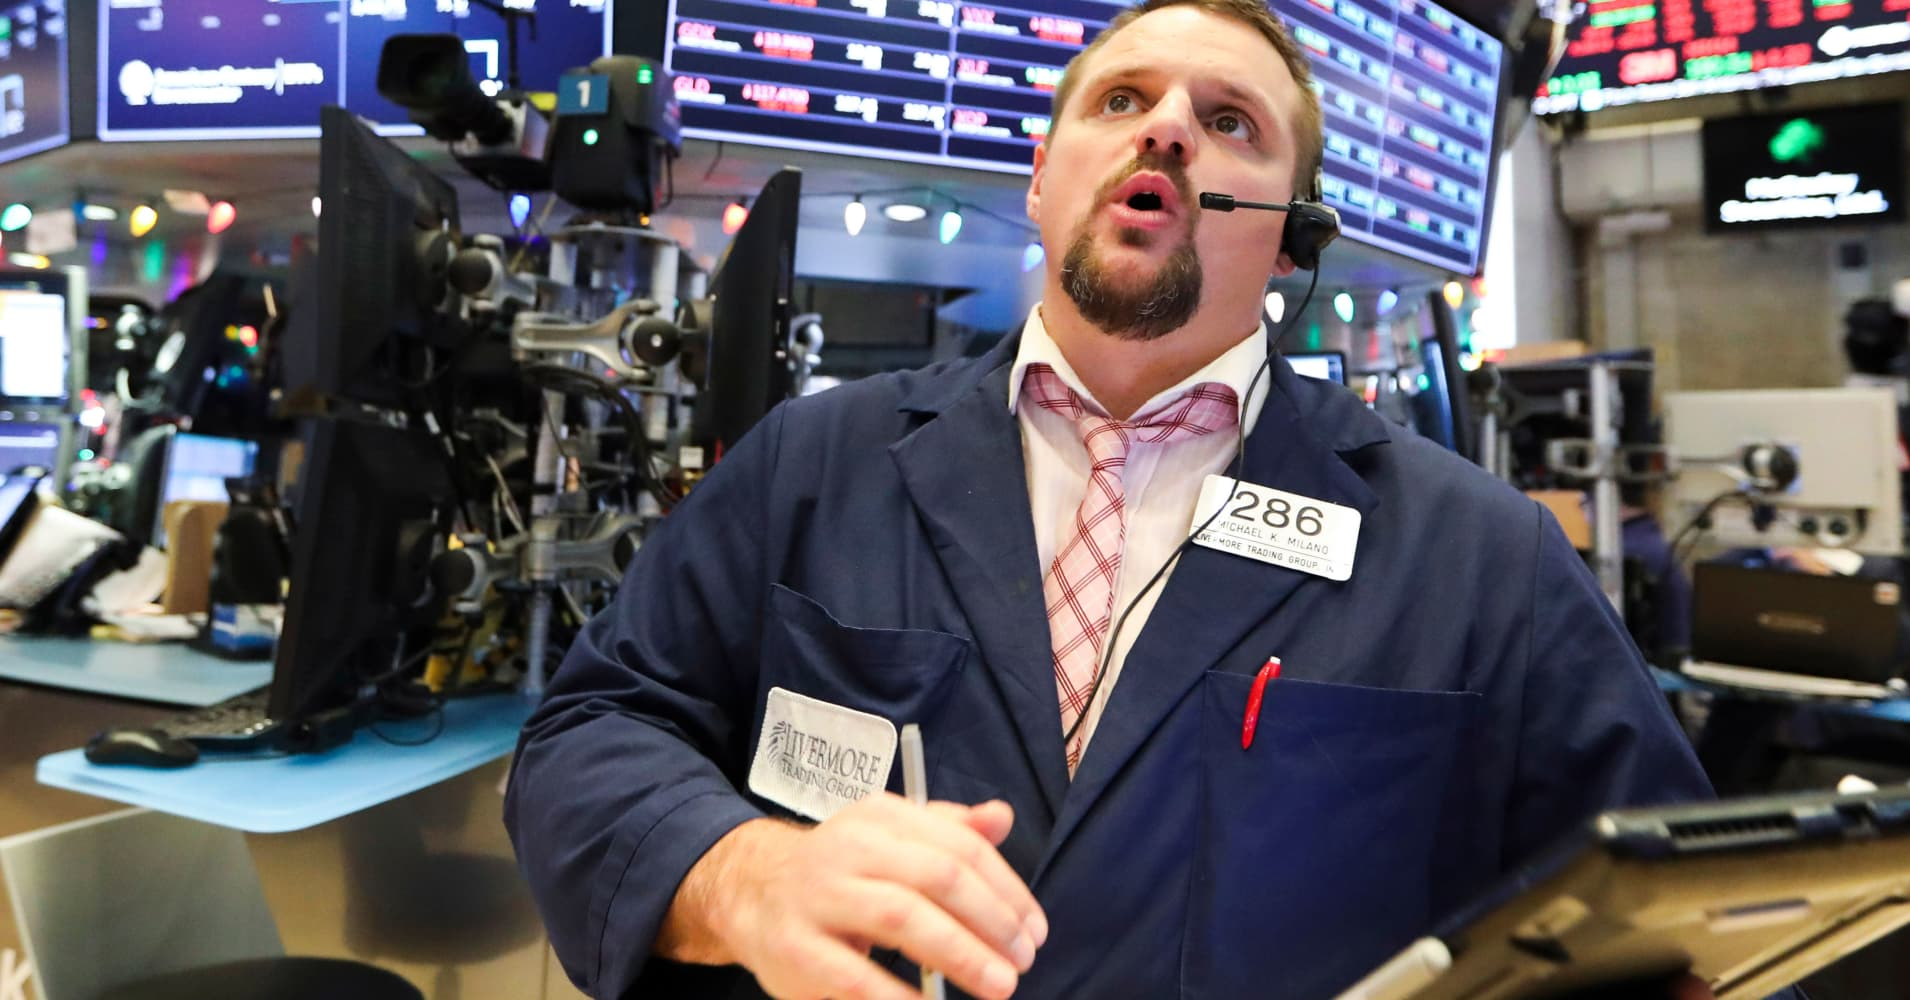 Stocks gain under the 'first five days' rule, setting up for a good 2019 performance